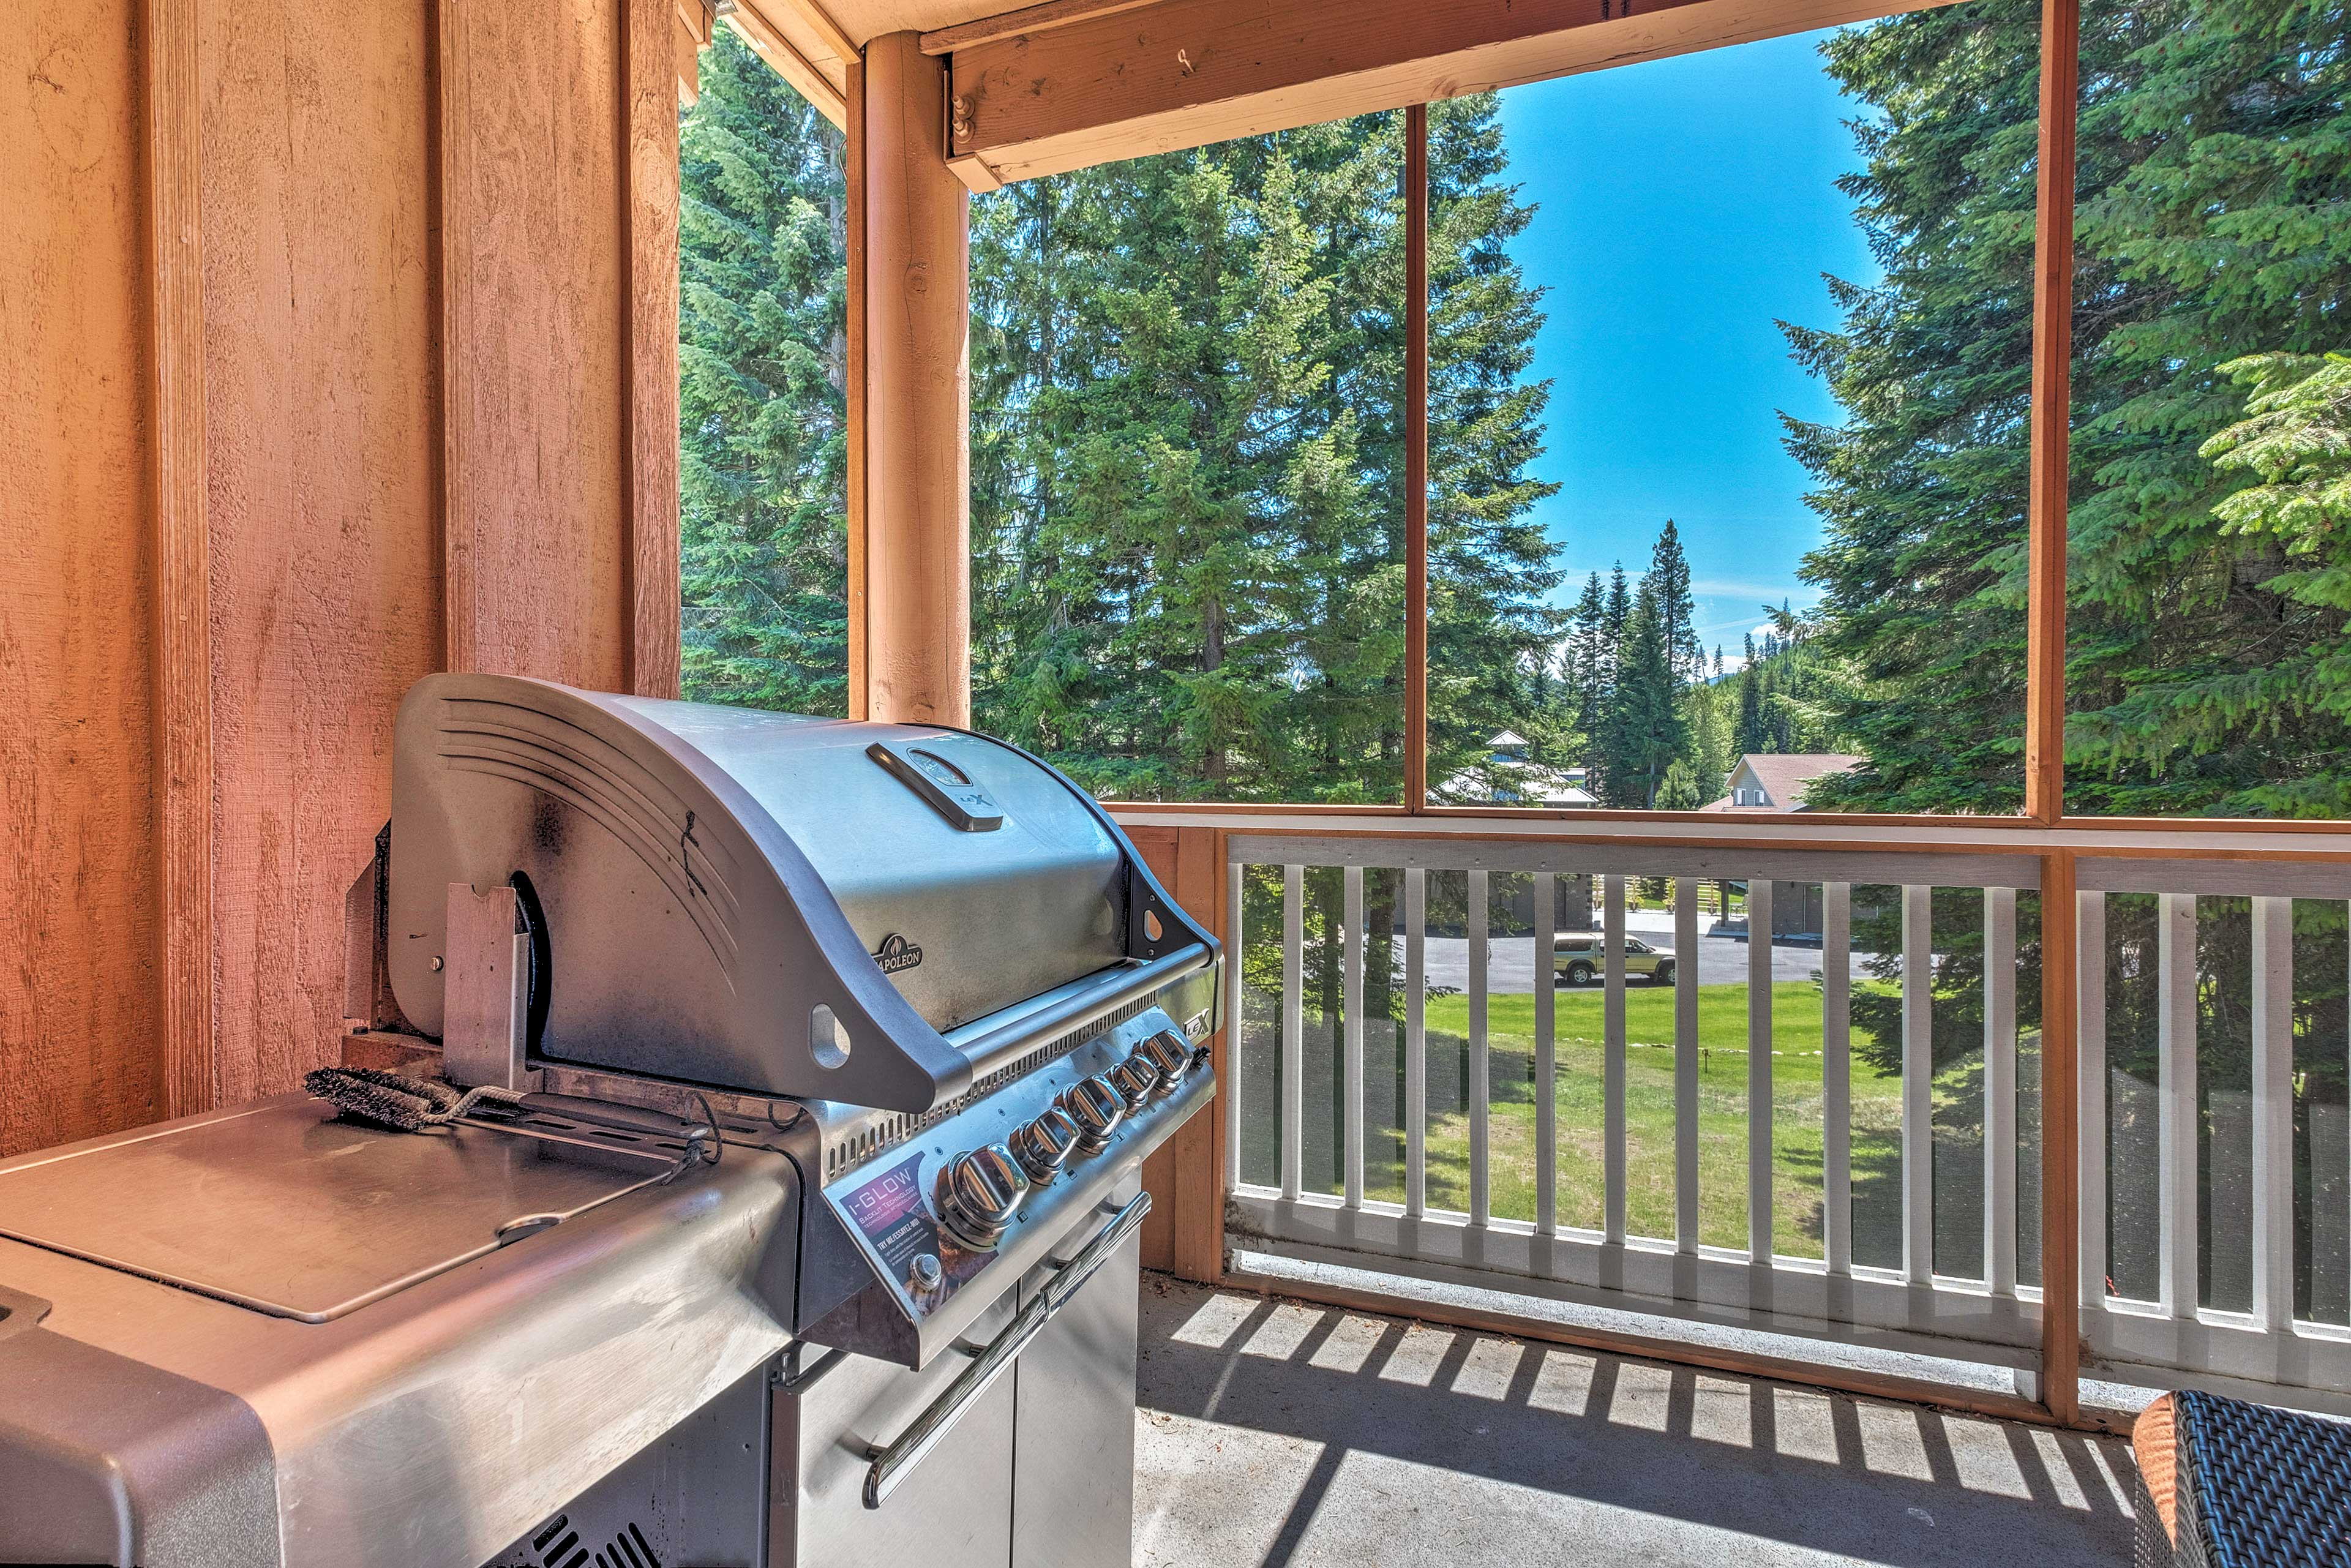 End your next lake outing with a cookout on the deck!